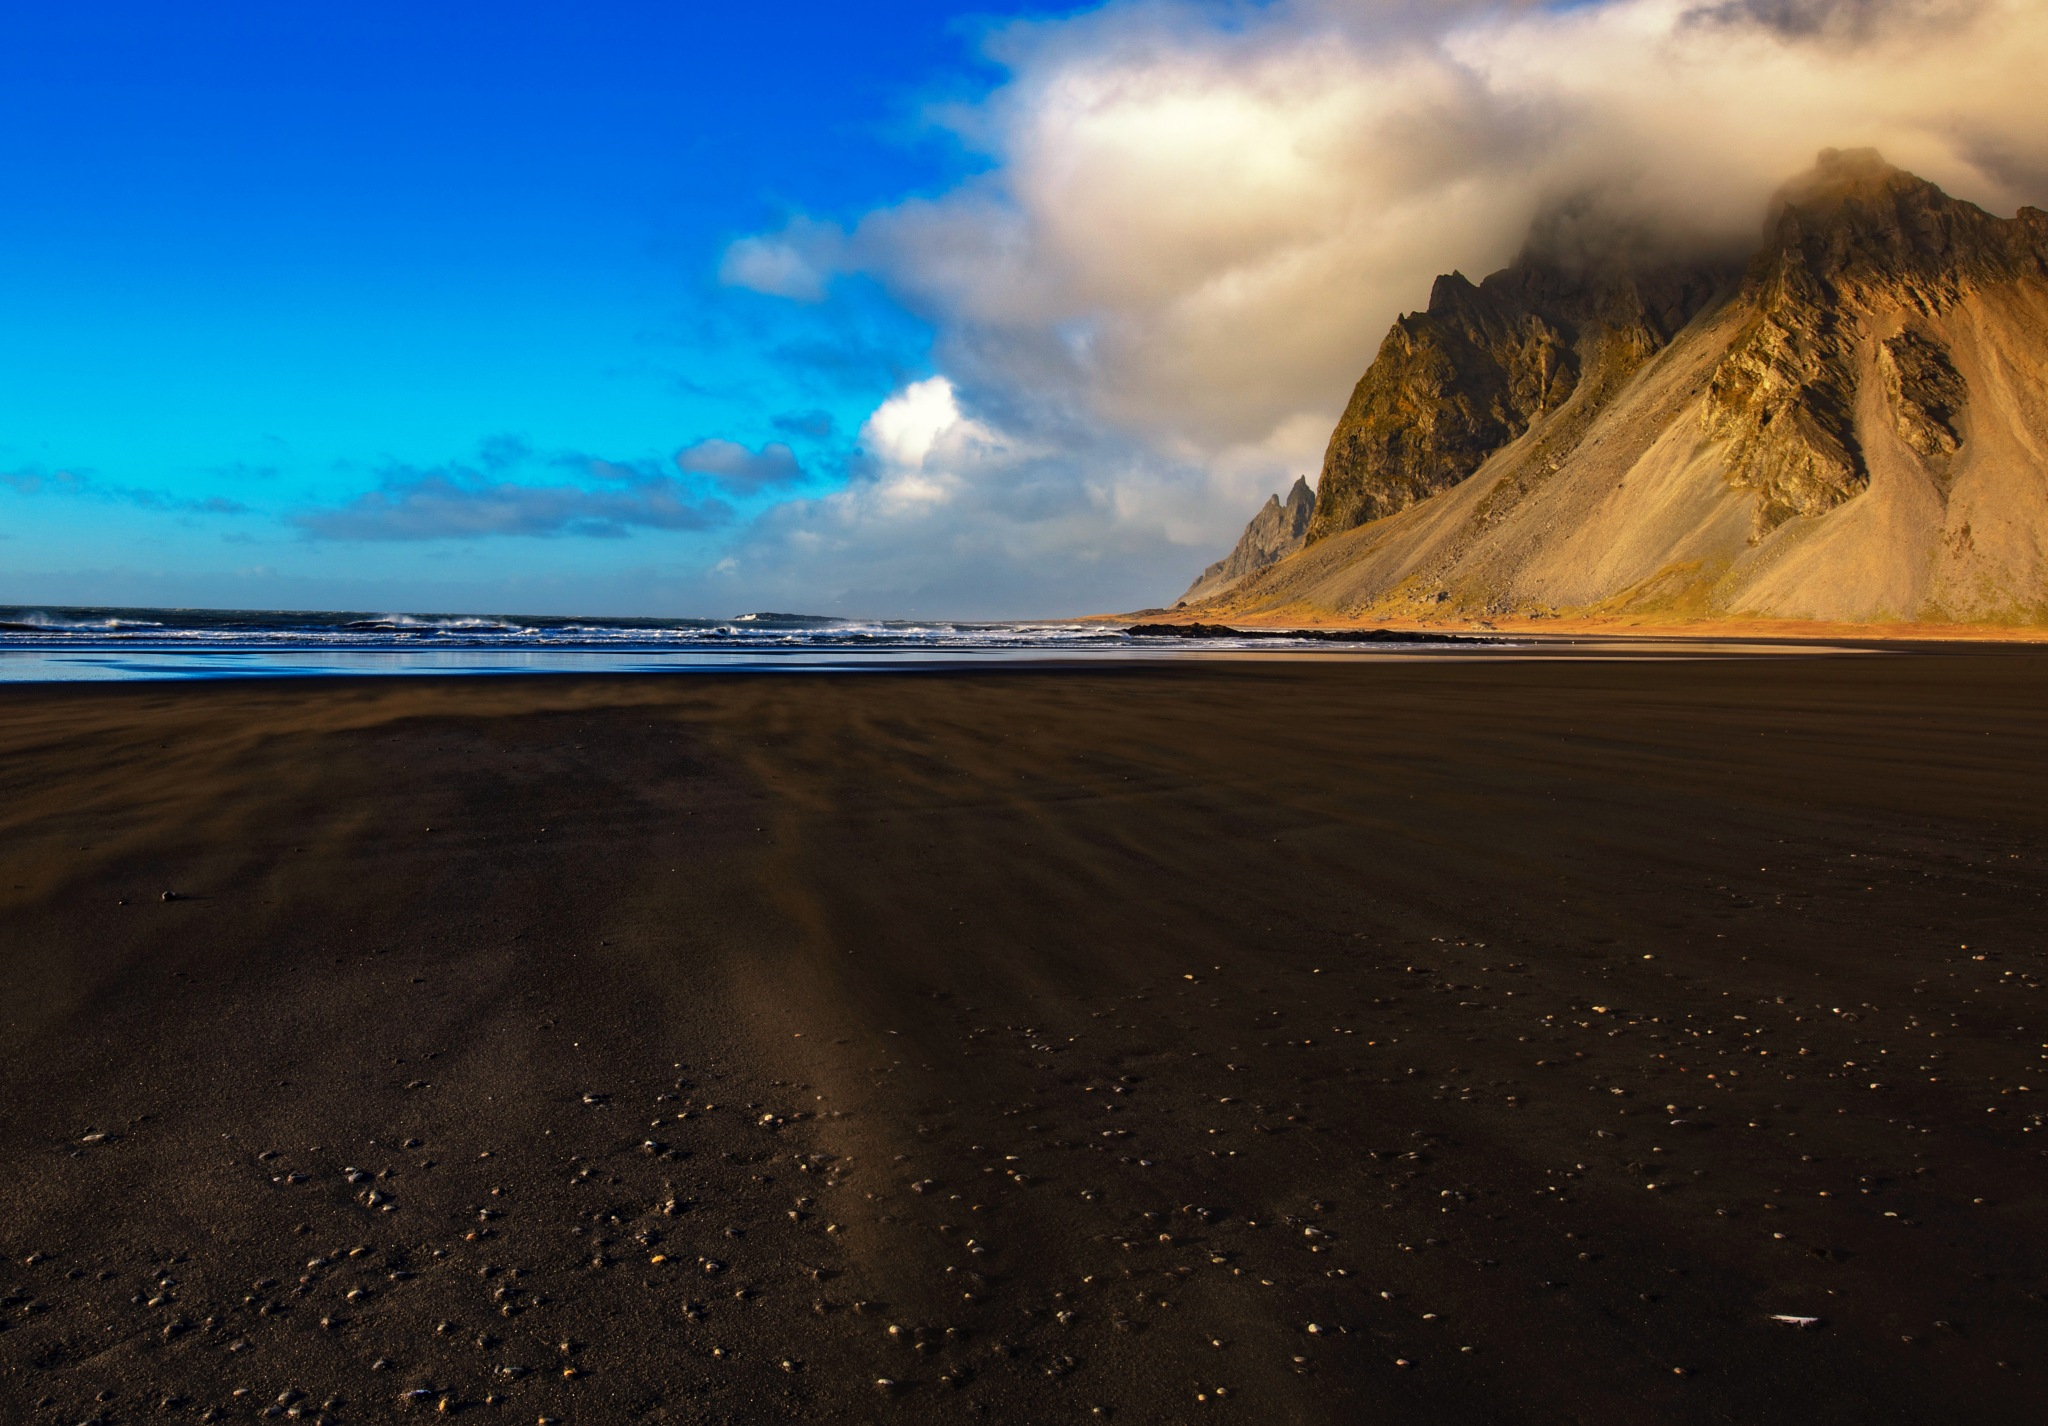 Black Sand Beach by andré figueiredo